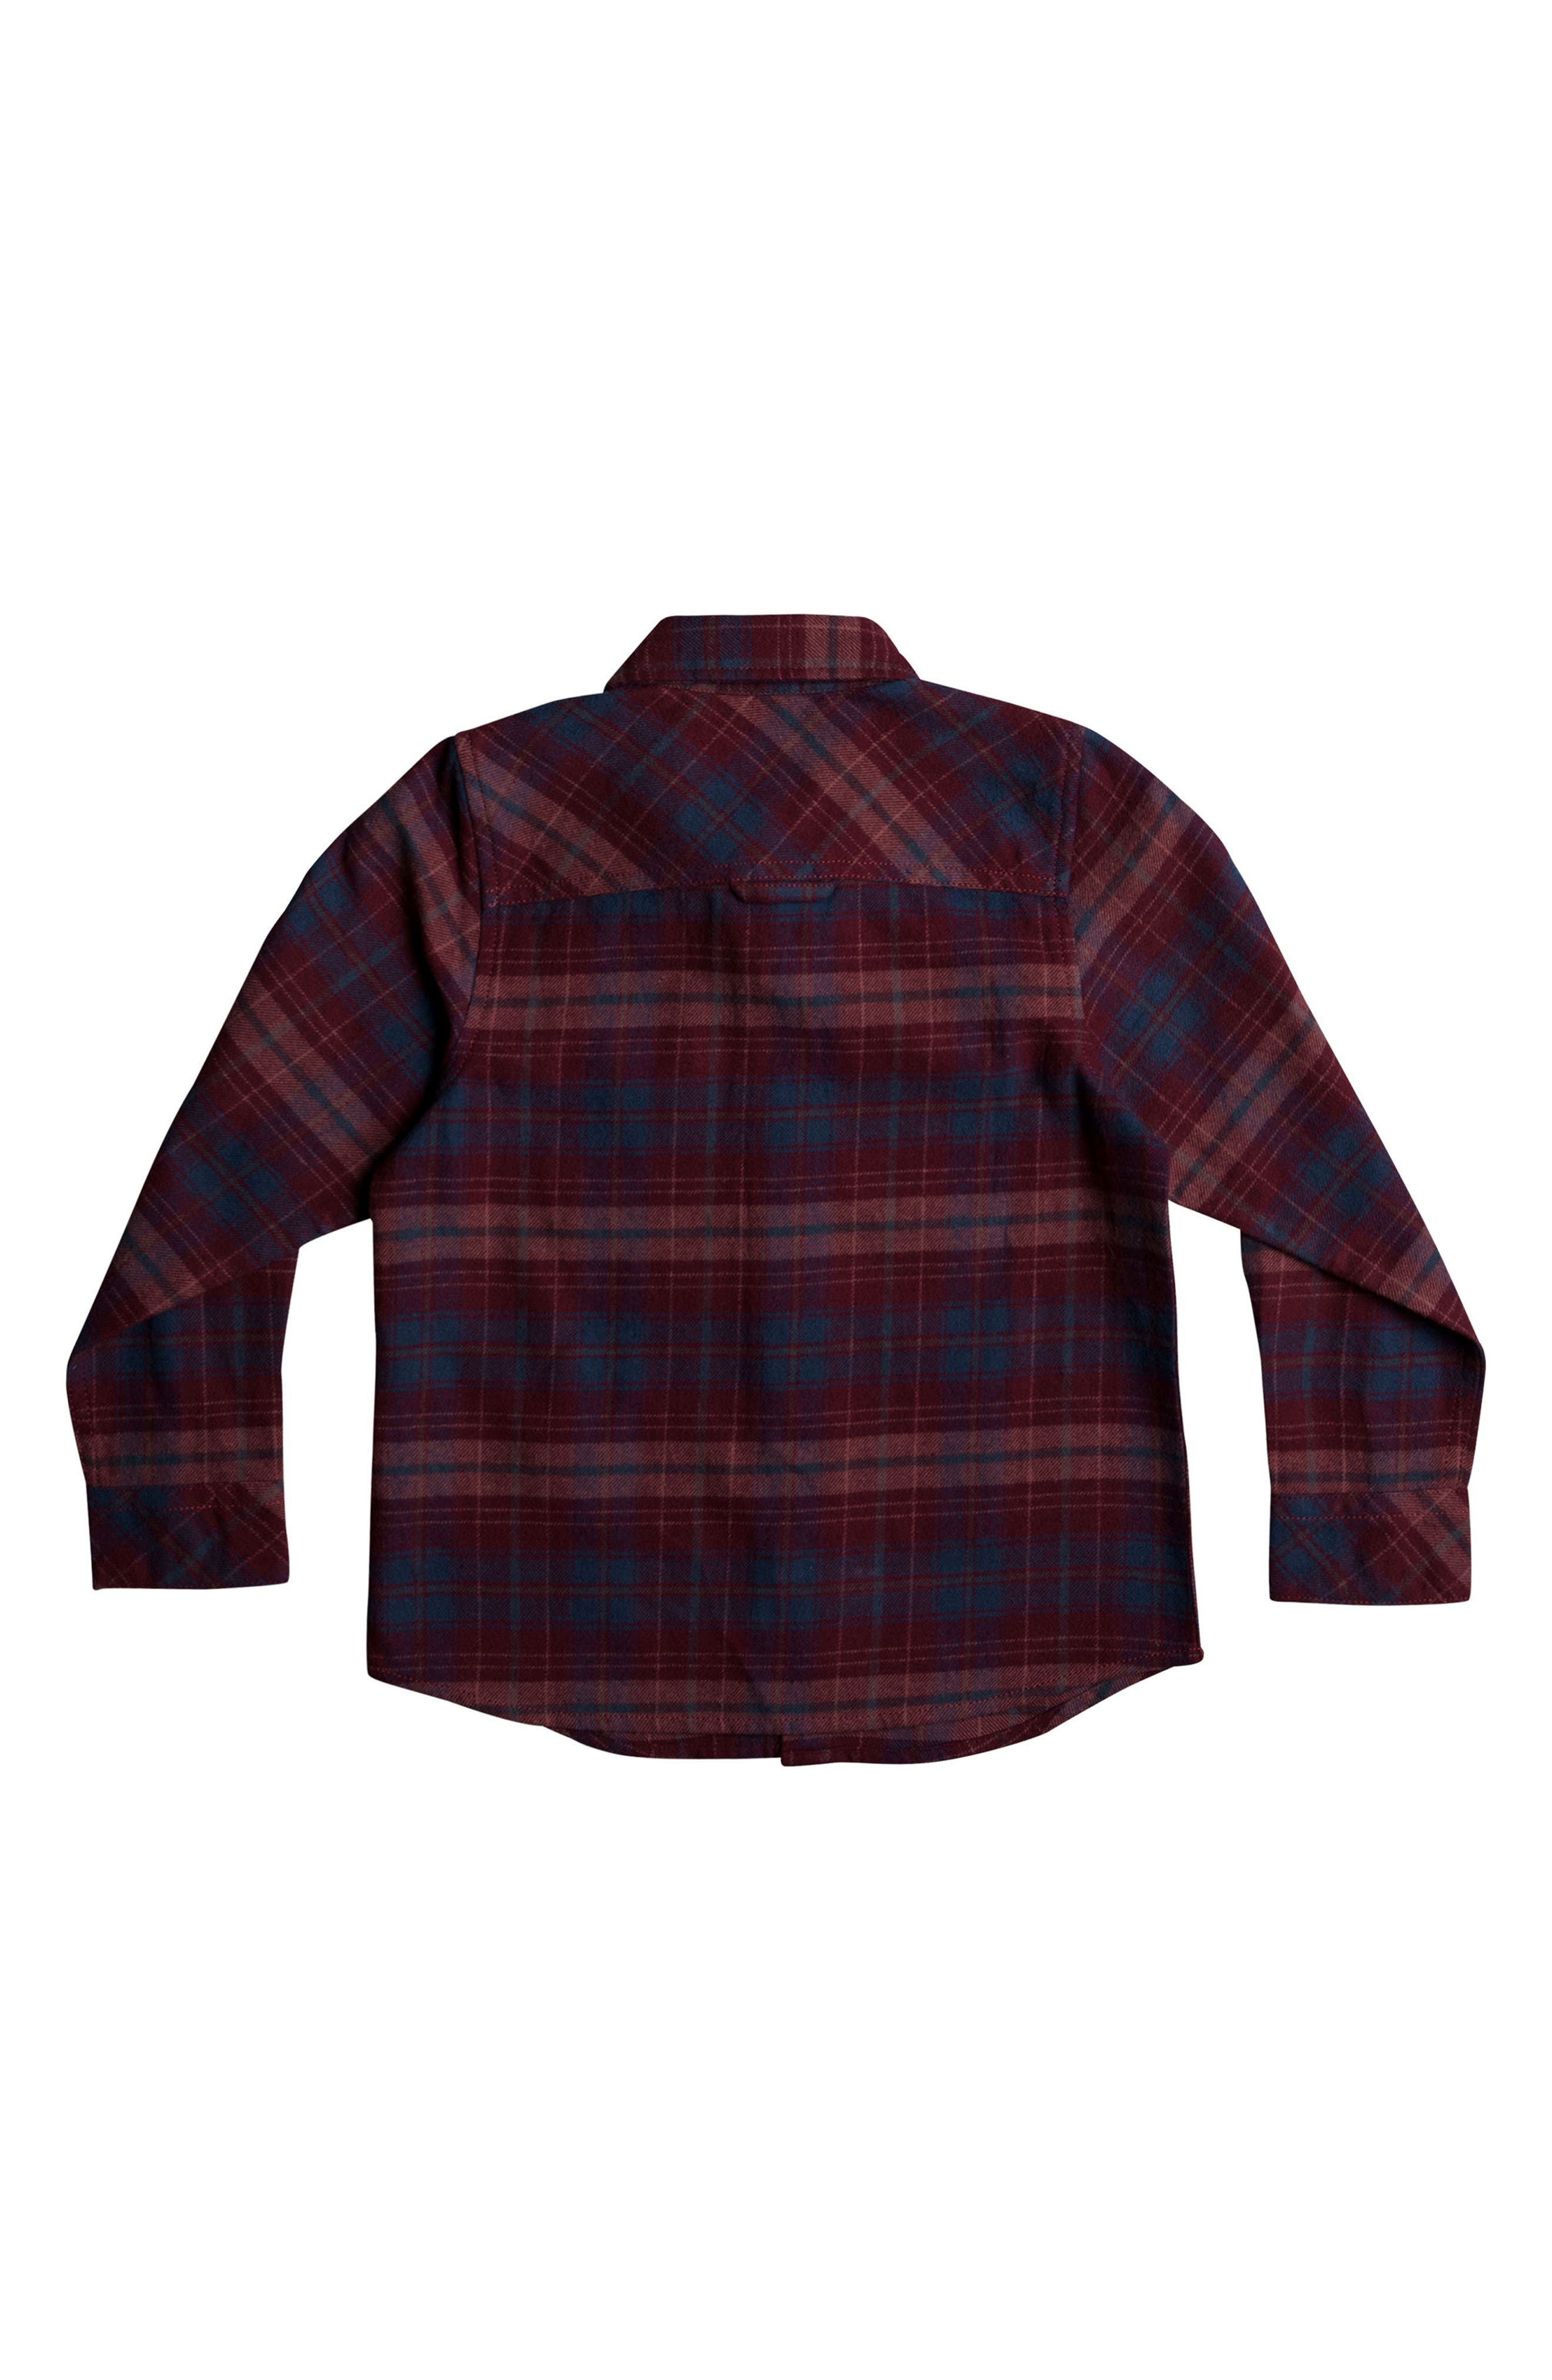 Fitzspeere Plaid Flannel Shirt,                             Alternate thumbnail 2, color,                             Windsor